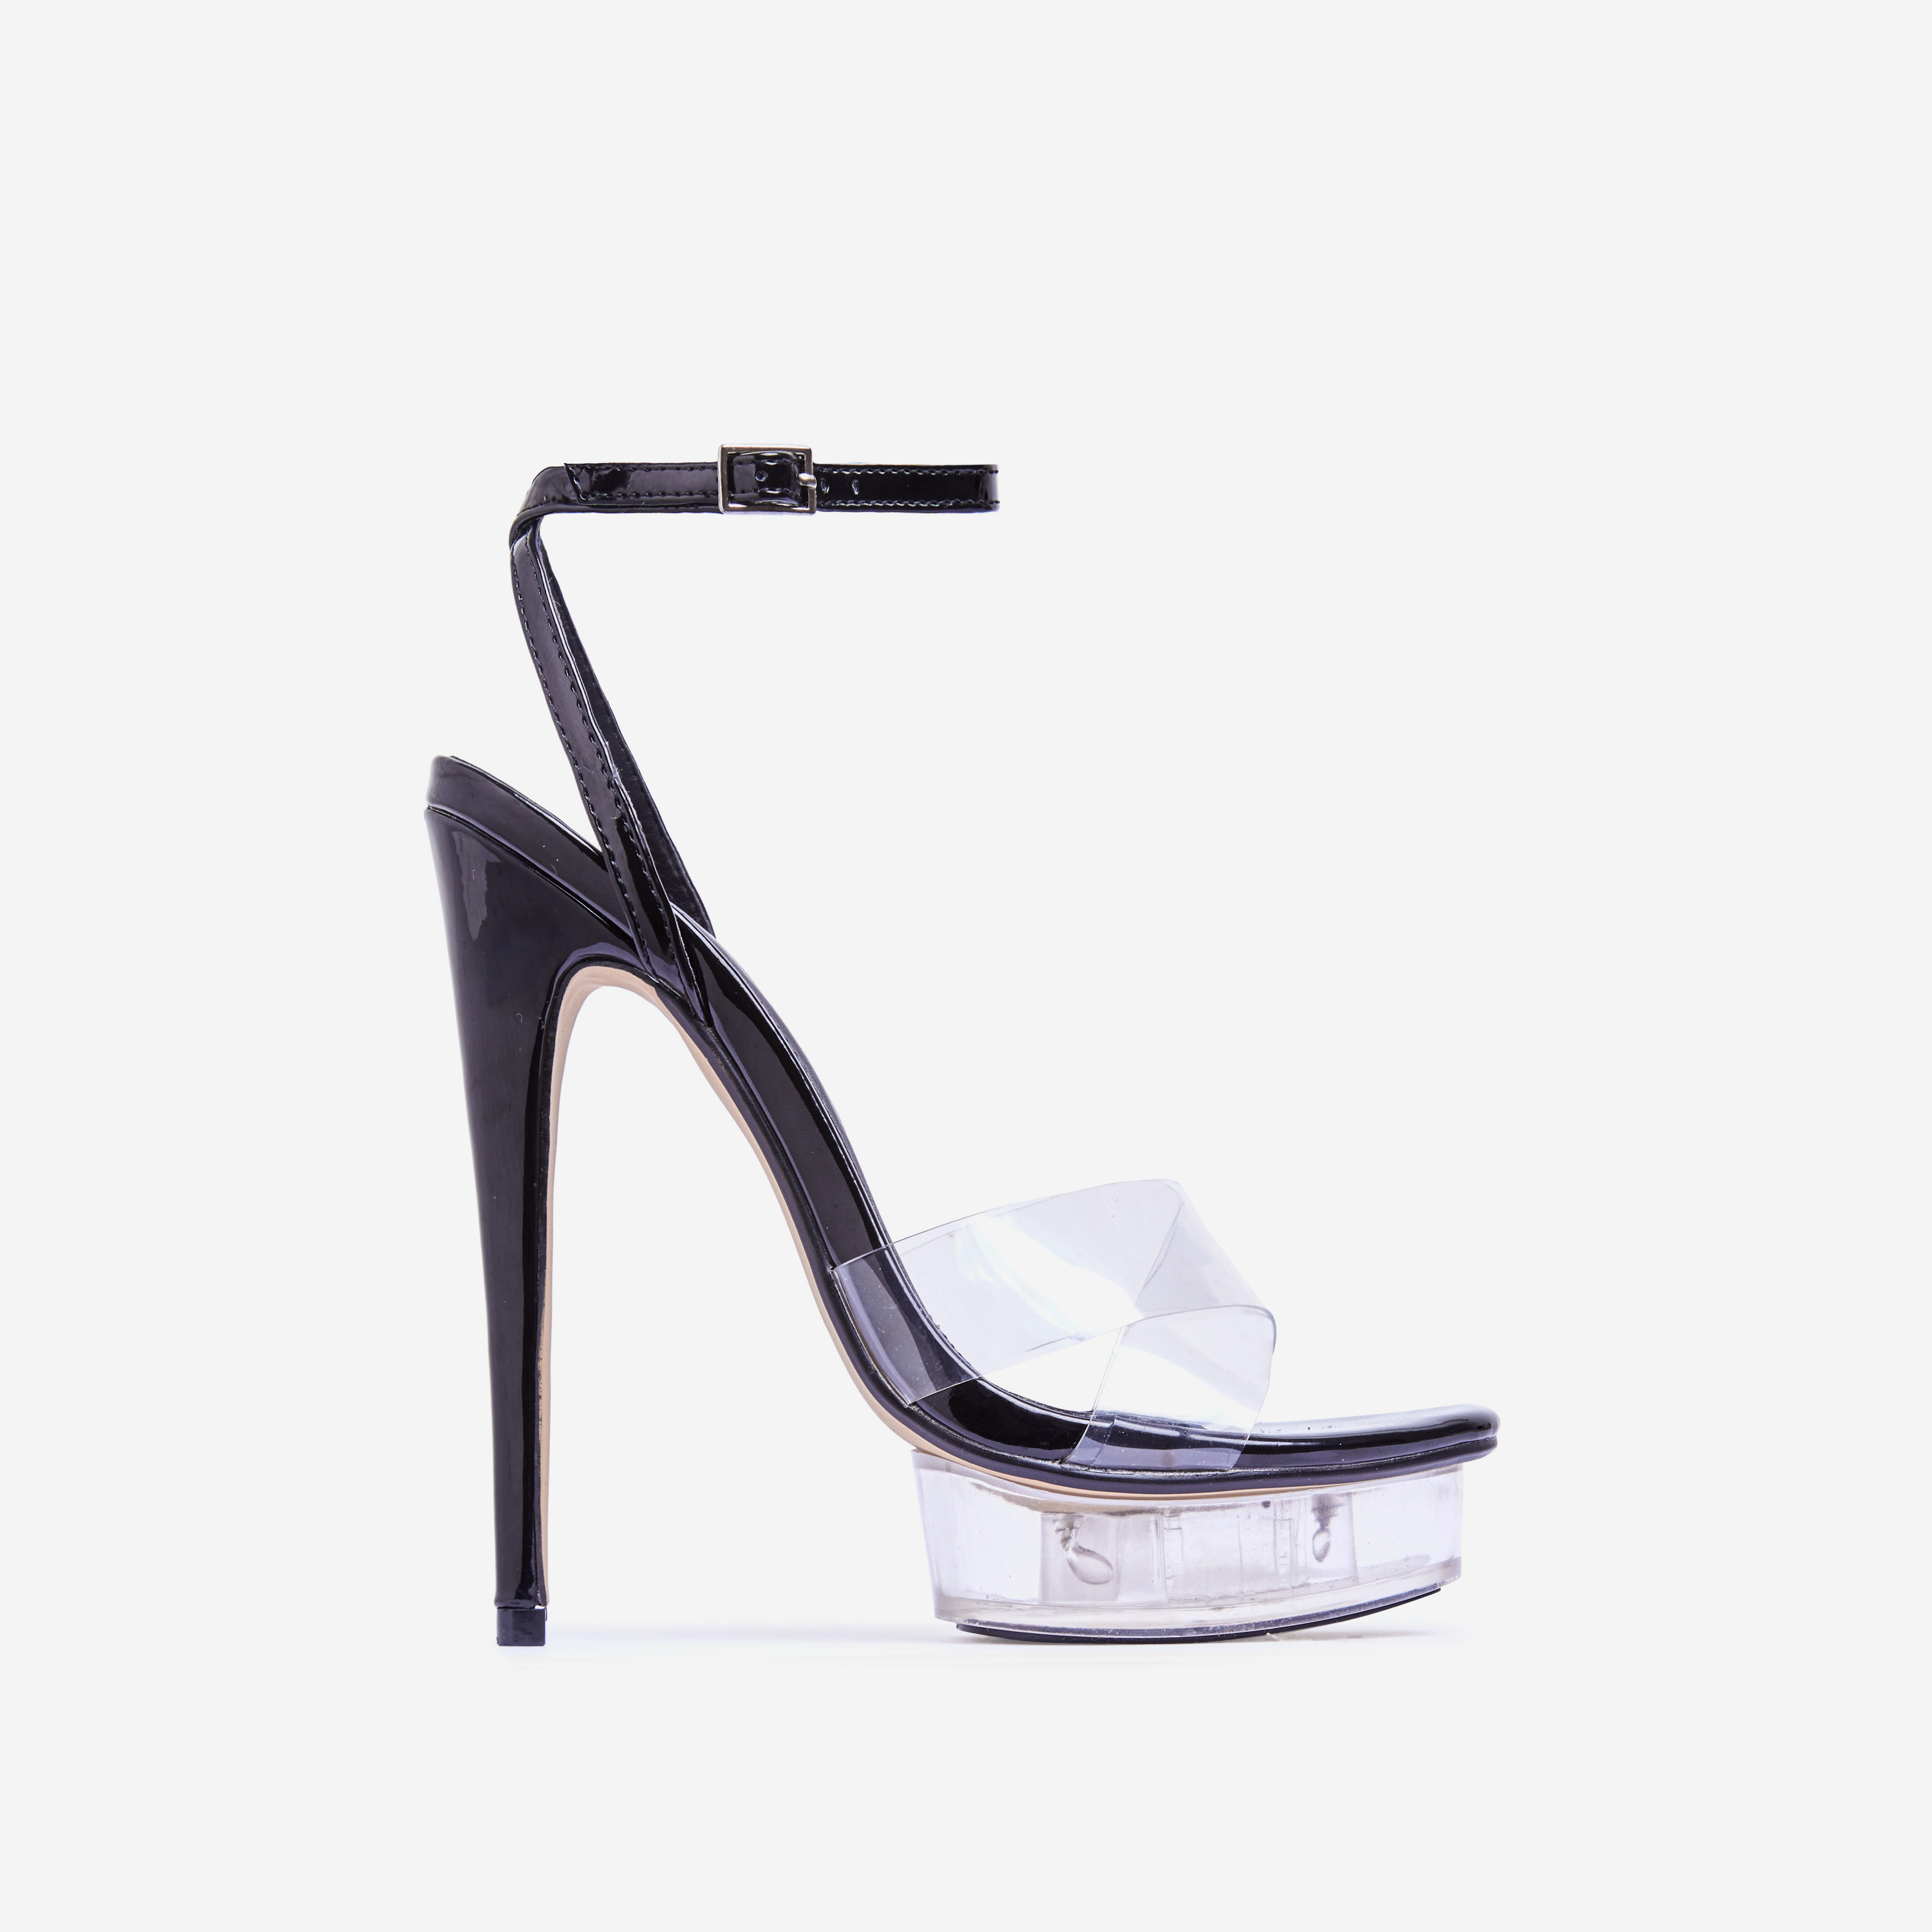 Smoking Barely There Perspex Platform Heel In Black Patent